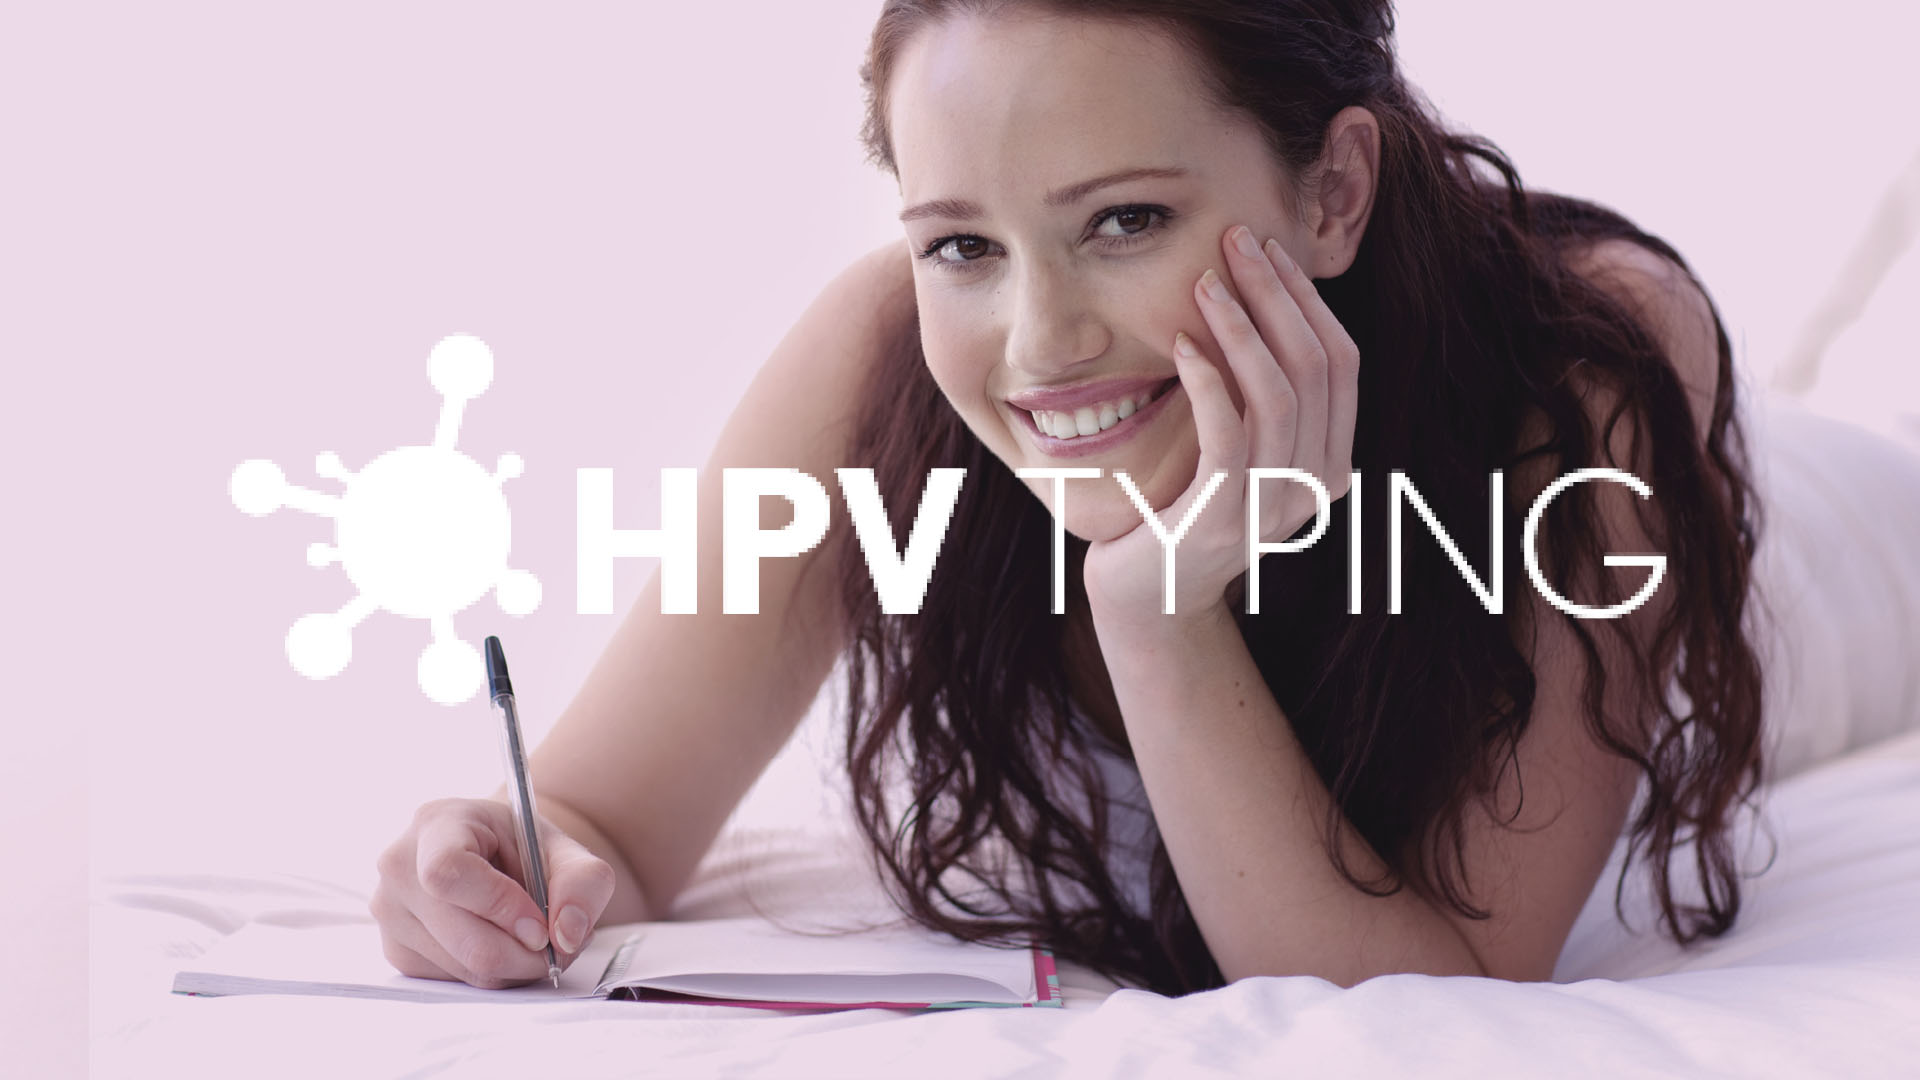 F-HPV Typing